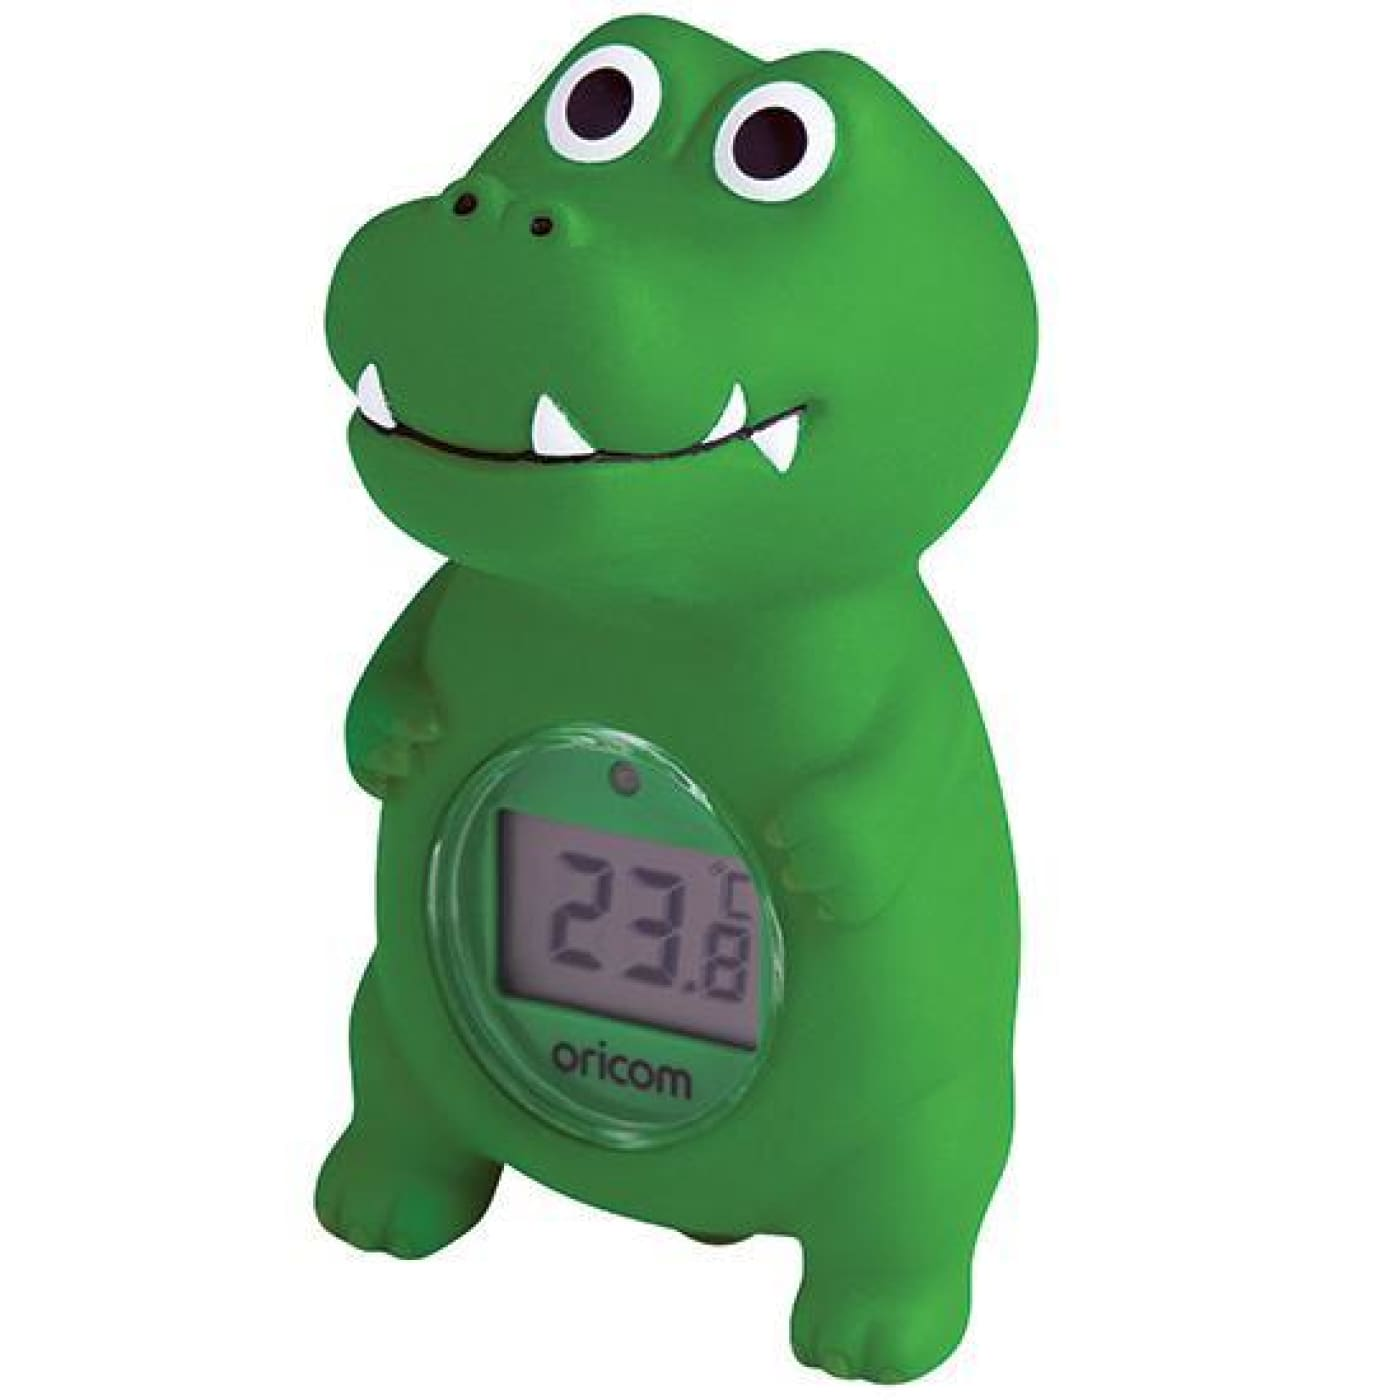 Oricom Bath Thermometer - Crocodile - HEALTH & HOME SAFETY - THERMOMETERS/MEDICINAL